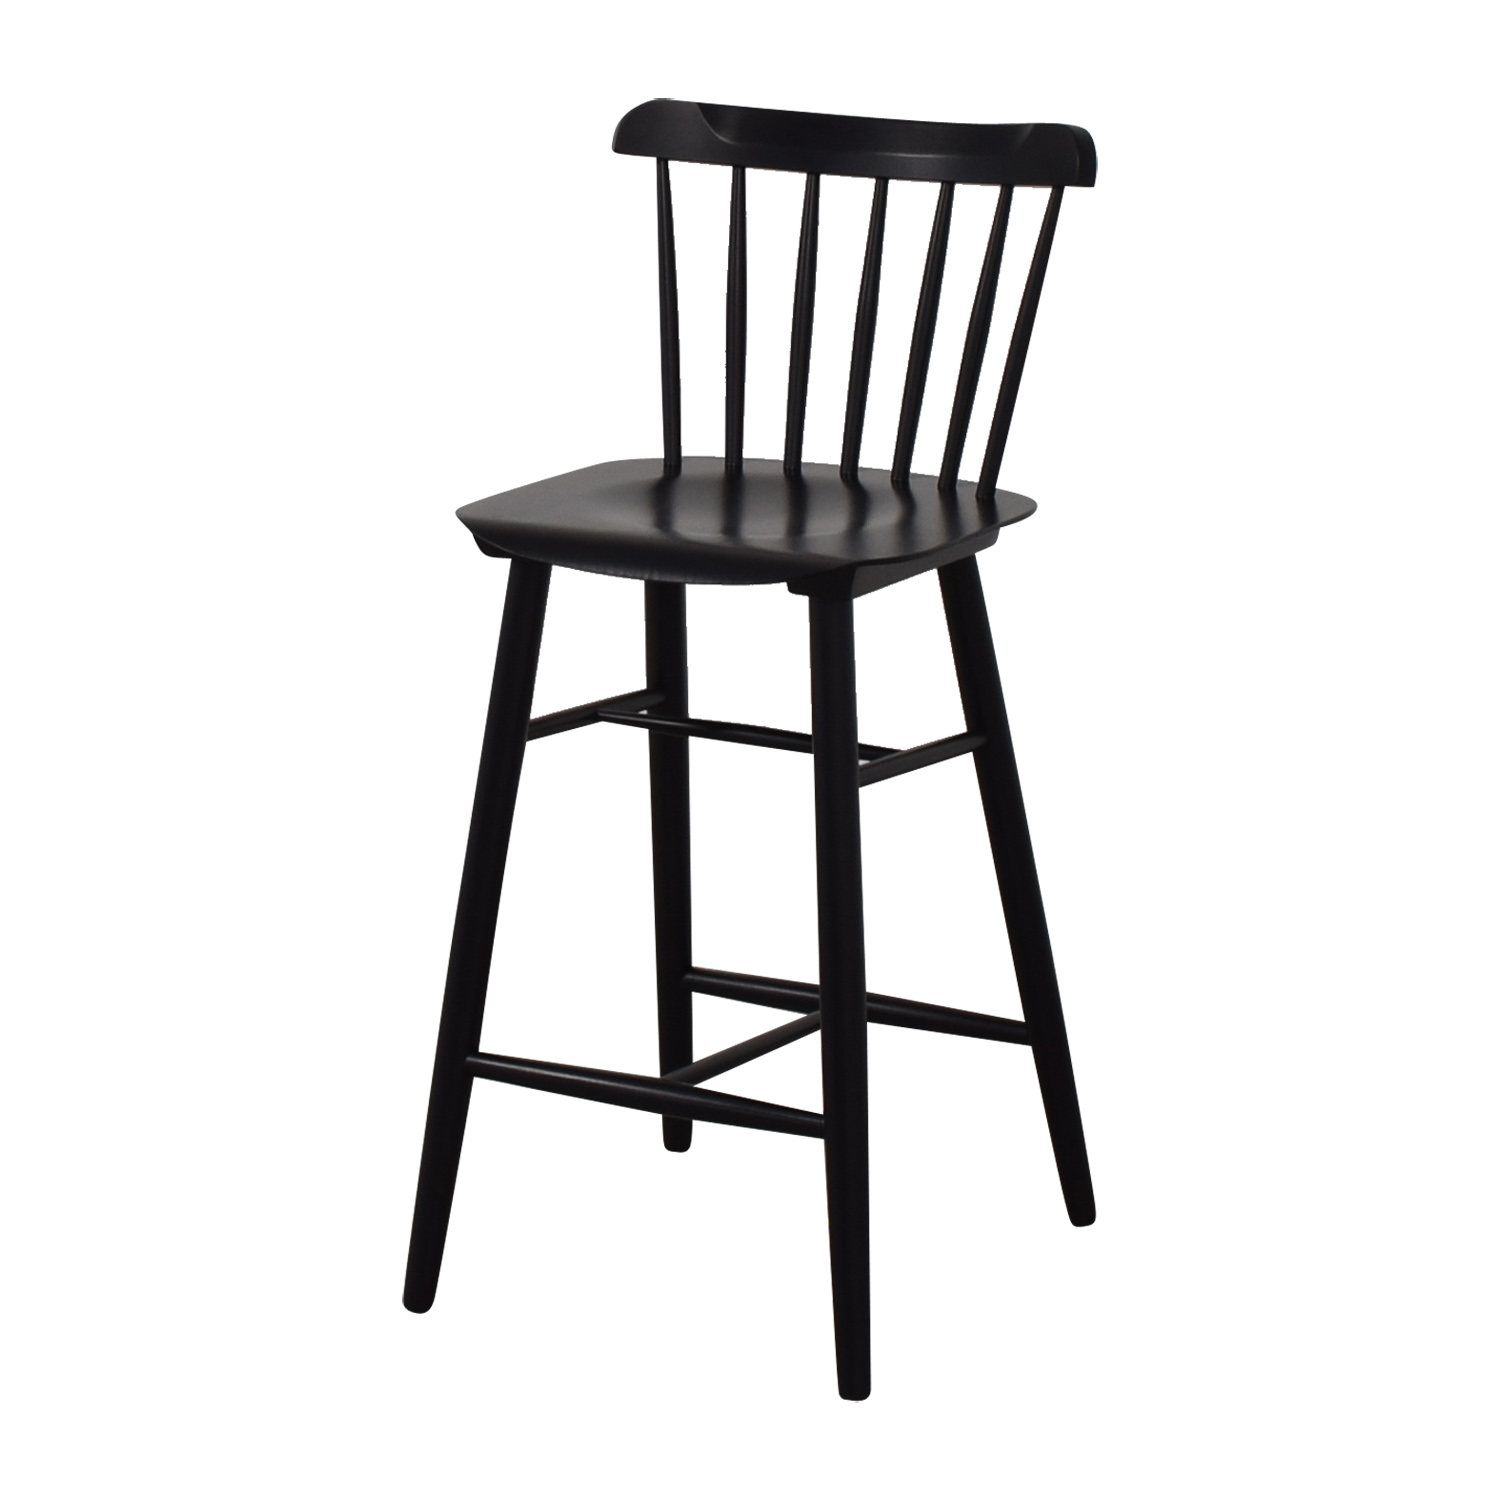 buy Design Within Reach Salt Counter Stool Design Within Reach Chairs